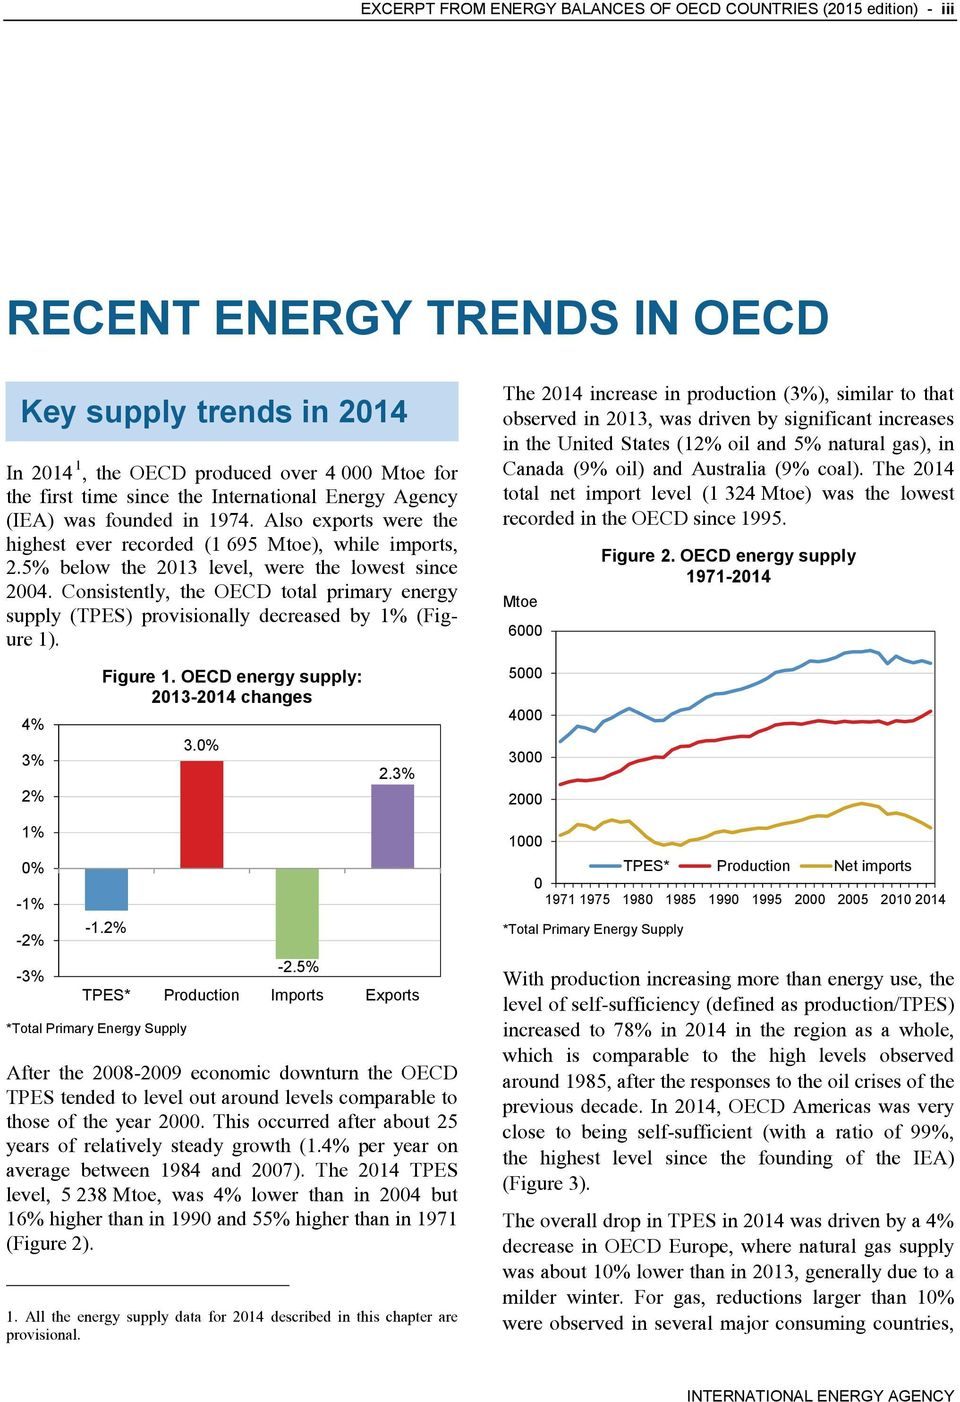 Consistently, the OECD total primary energy supply (TPES) provisionally decreased by 1% (Figure 1).